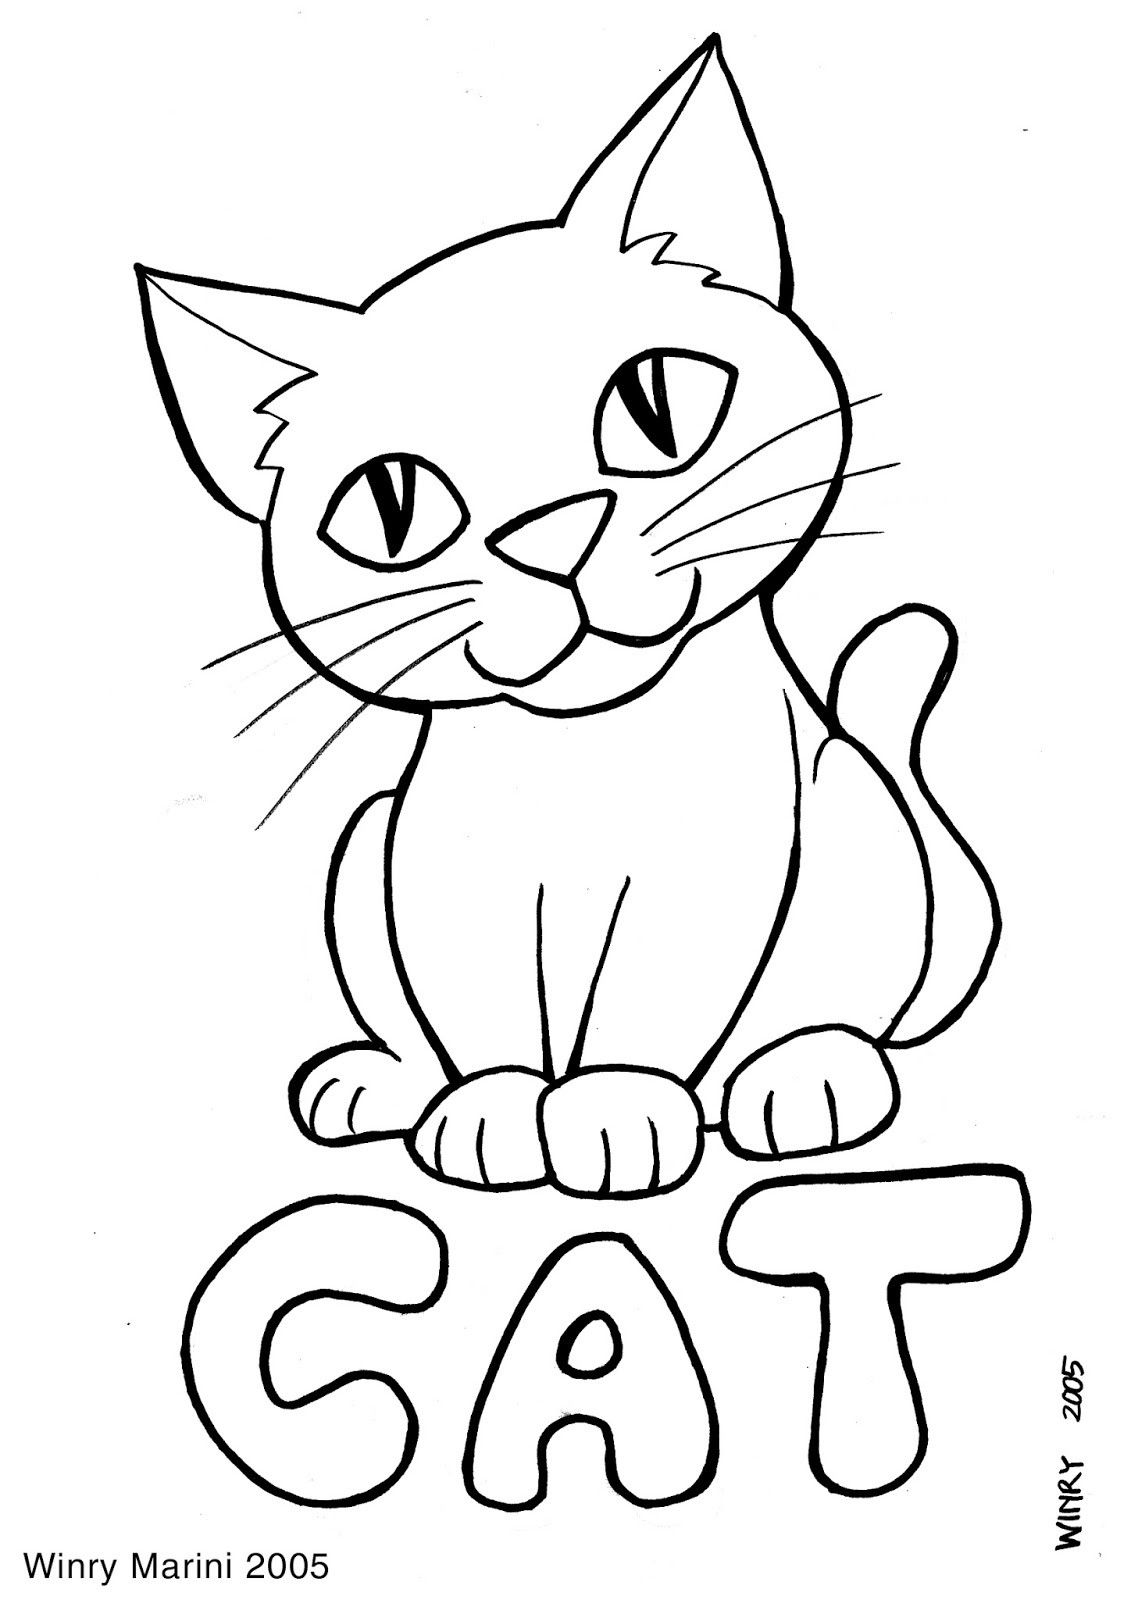 Cat Coloring Page By Winry Marini